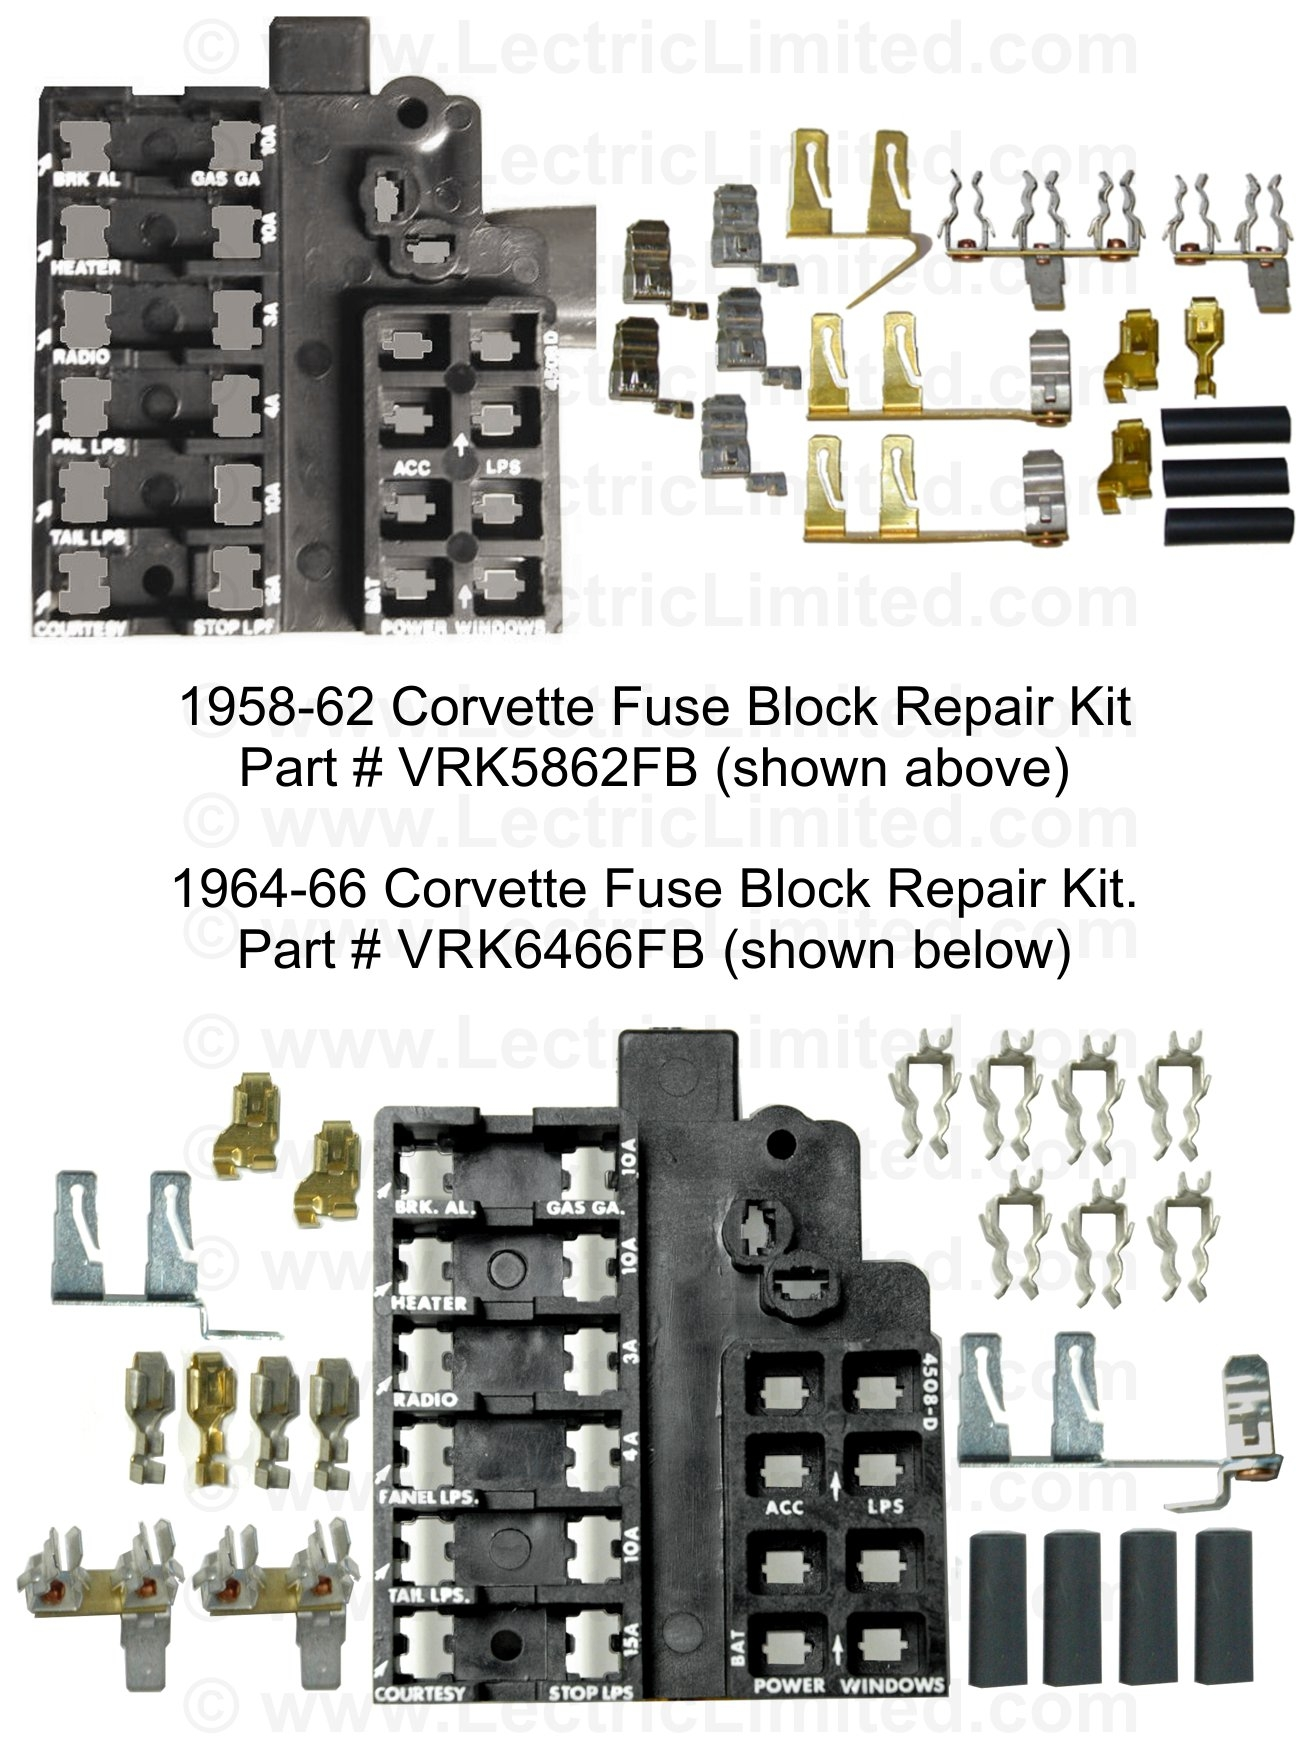 fuse_block_repair_kits repair components Car Fuse Box Fuse Symbol at honlapkeszites.co